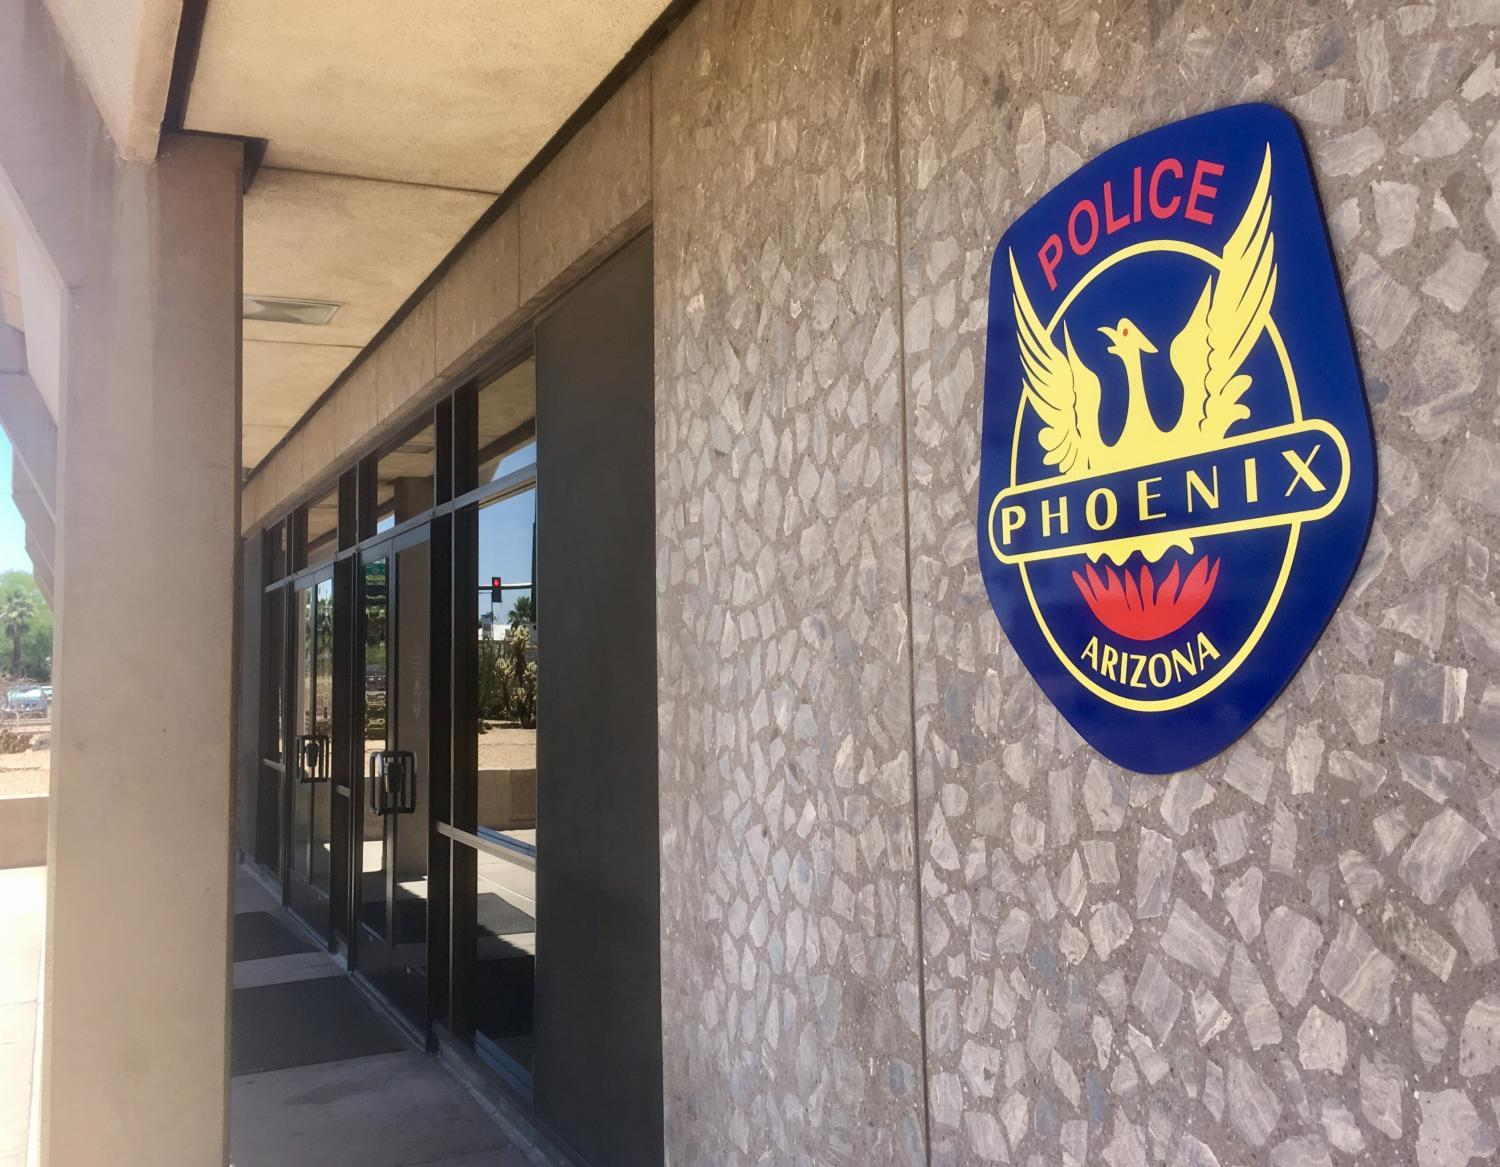 After Years Of Hiring Why Isn T Phoenix Police Fully Staffed Kjzz